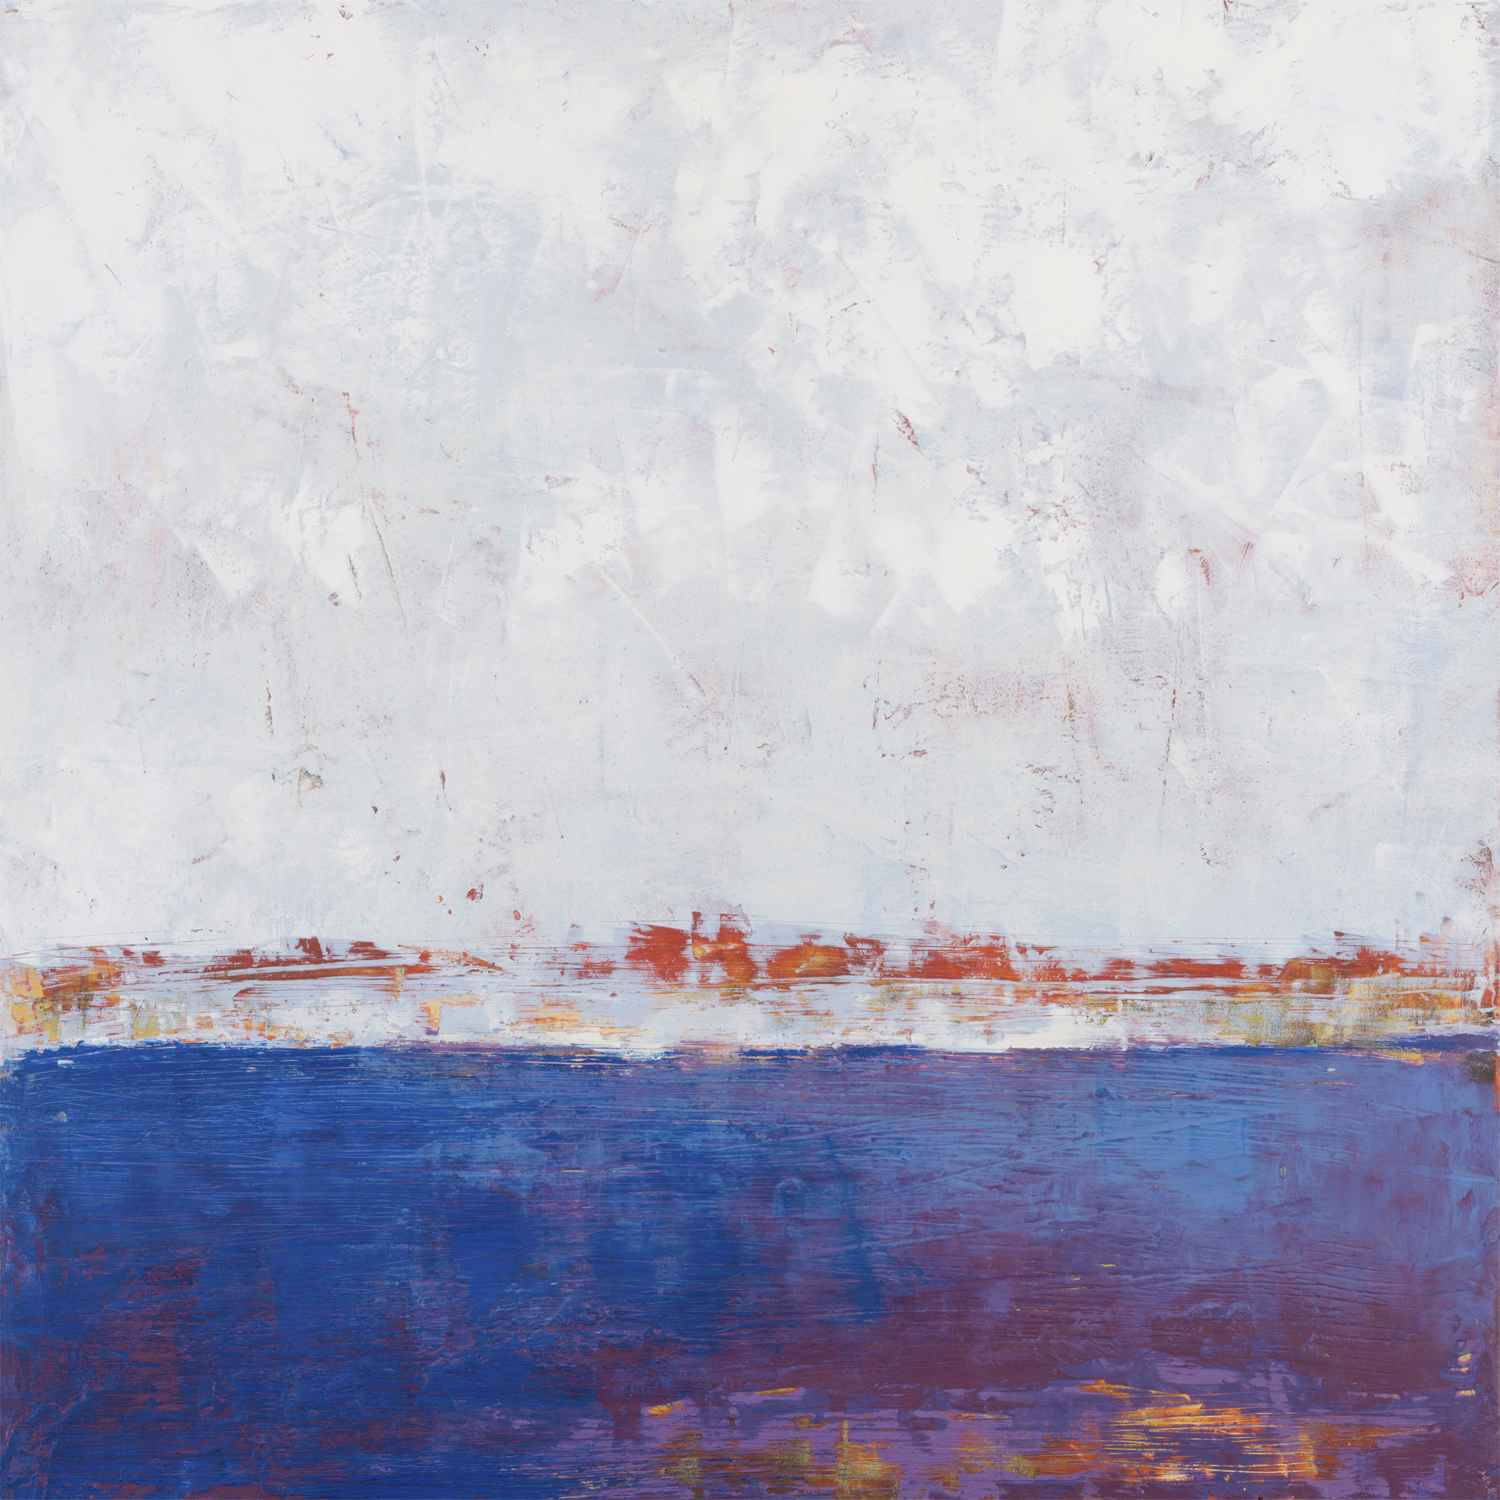 Languedoc-Roussillon by  Anya Leveille - Masterpiece Online